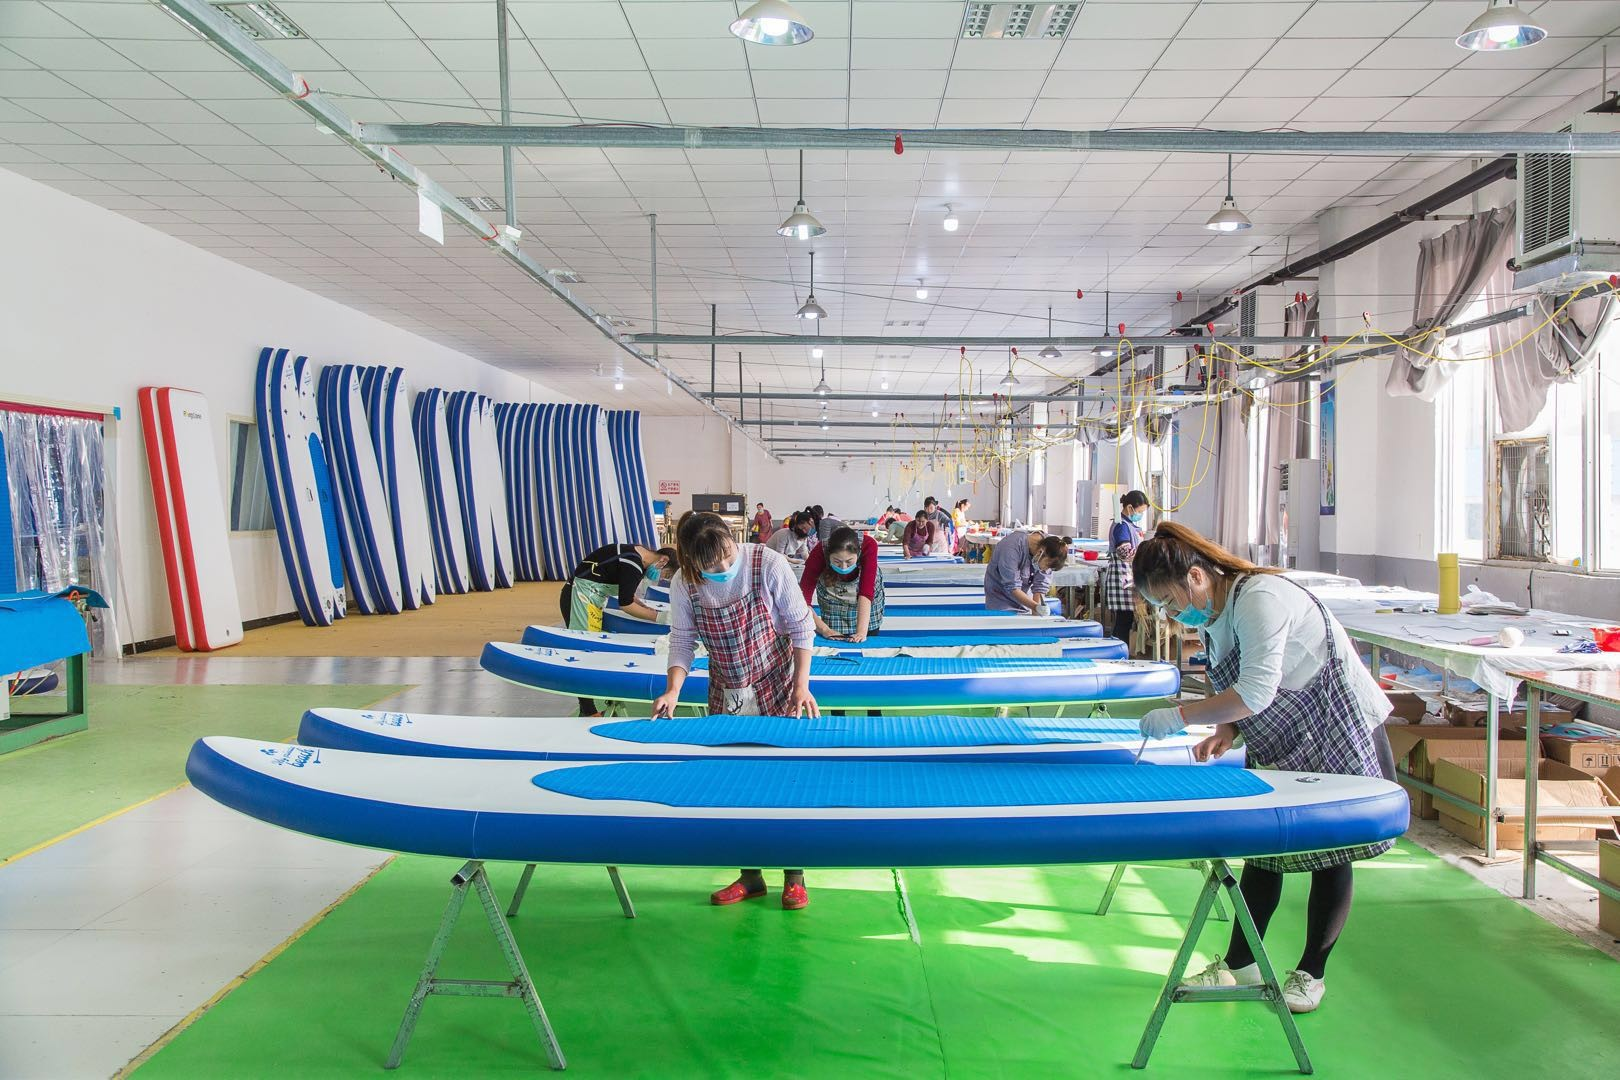 Inflatable Stand Up Paddle Board Production